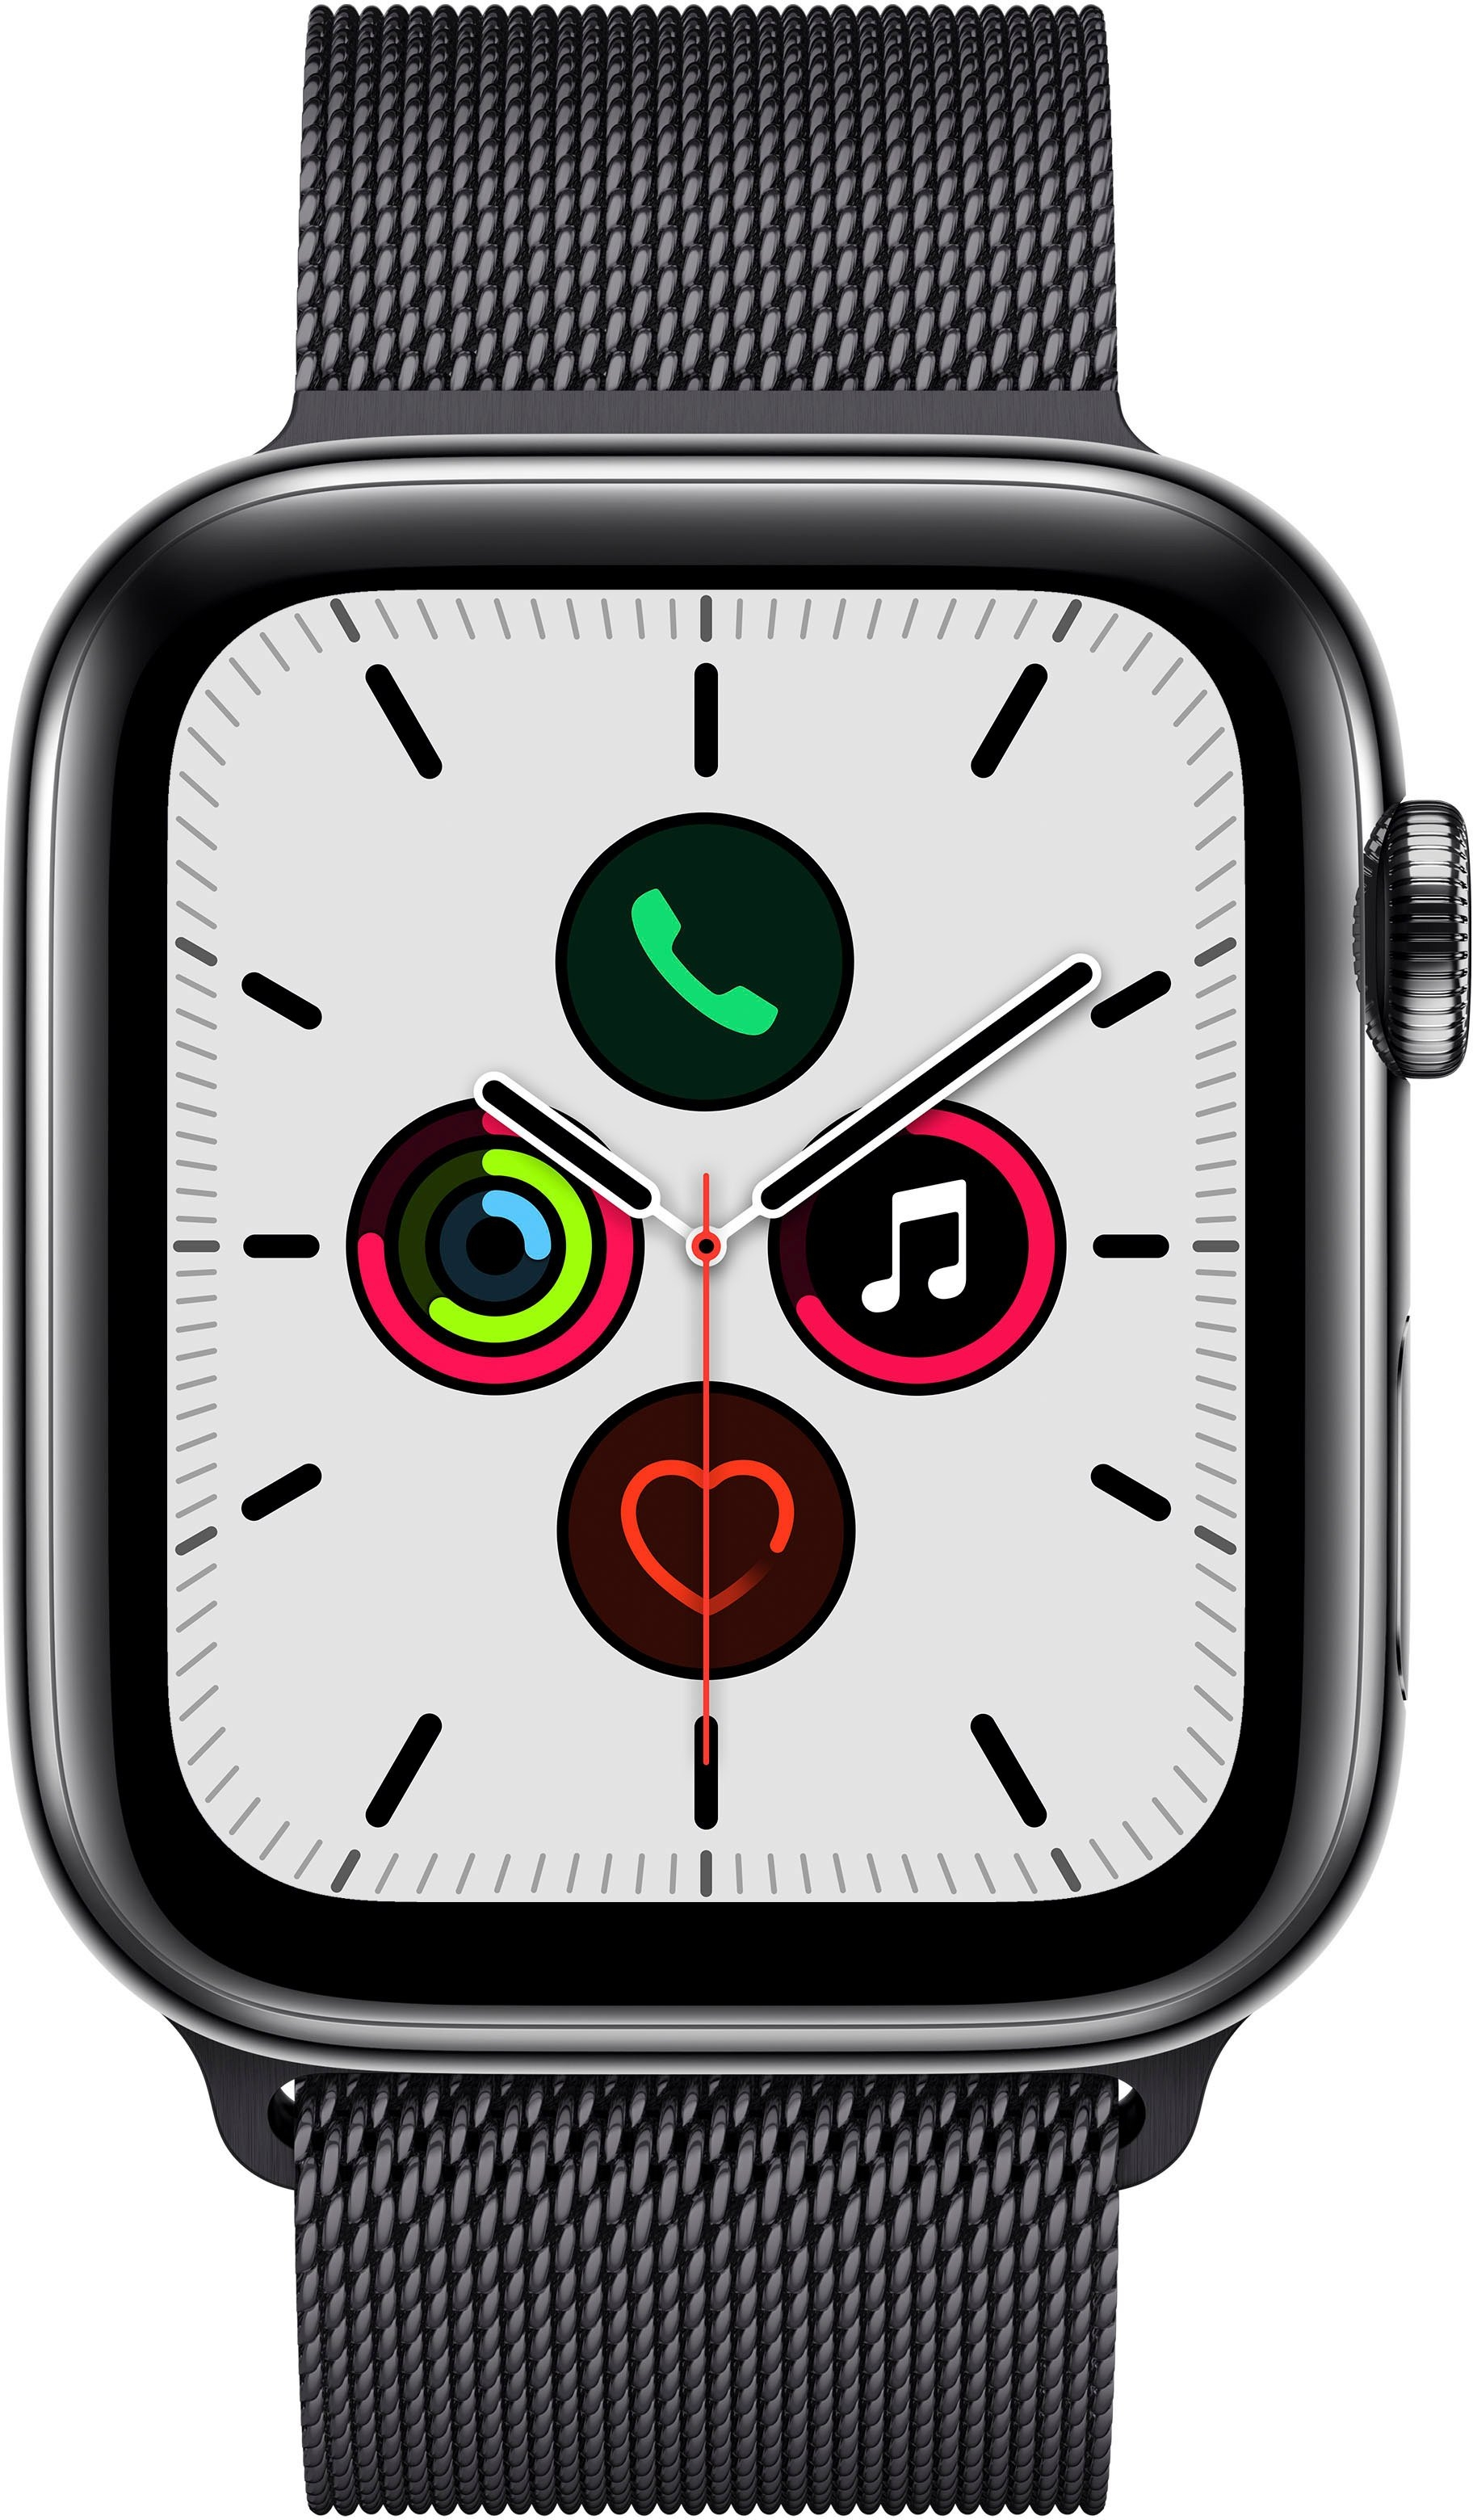 Apple Watch Series 5 44mm GPS + Cellular met Milanaise Armband nu online bestellen